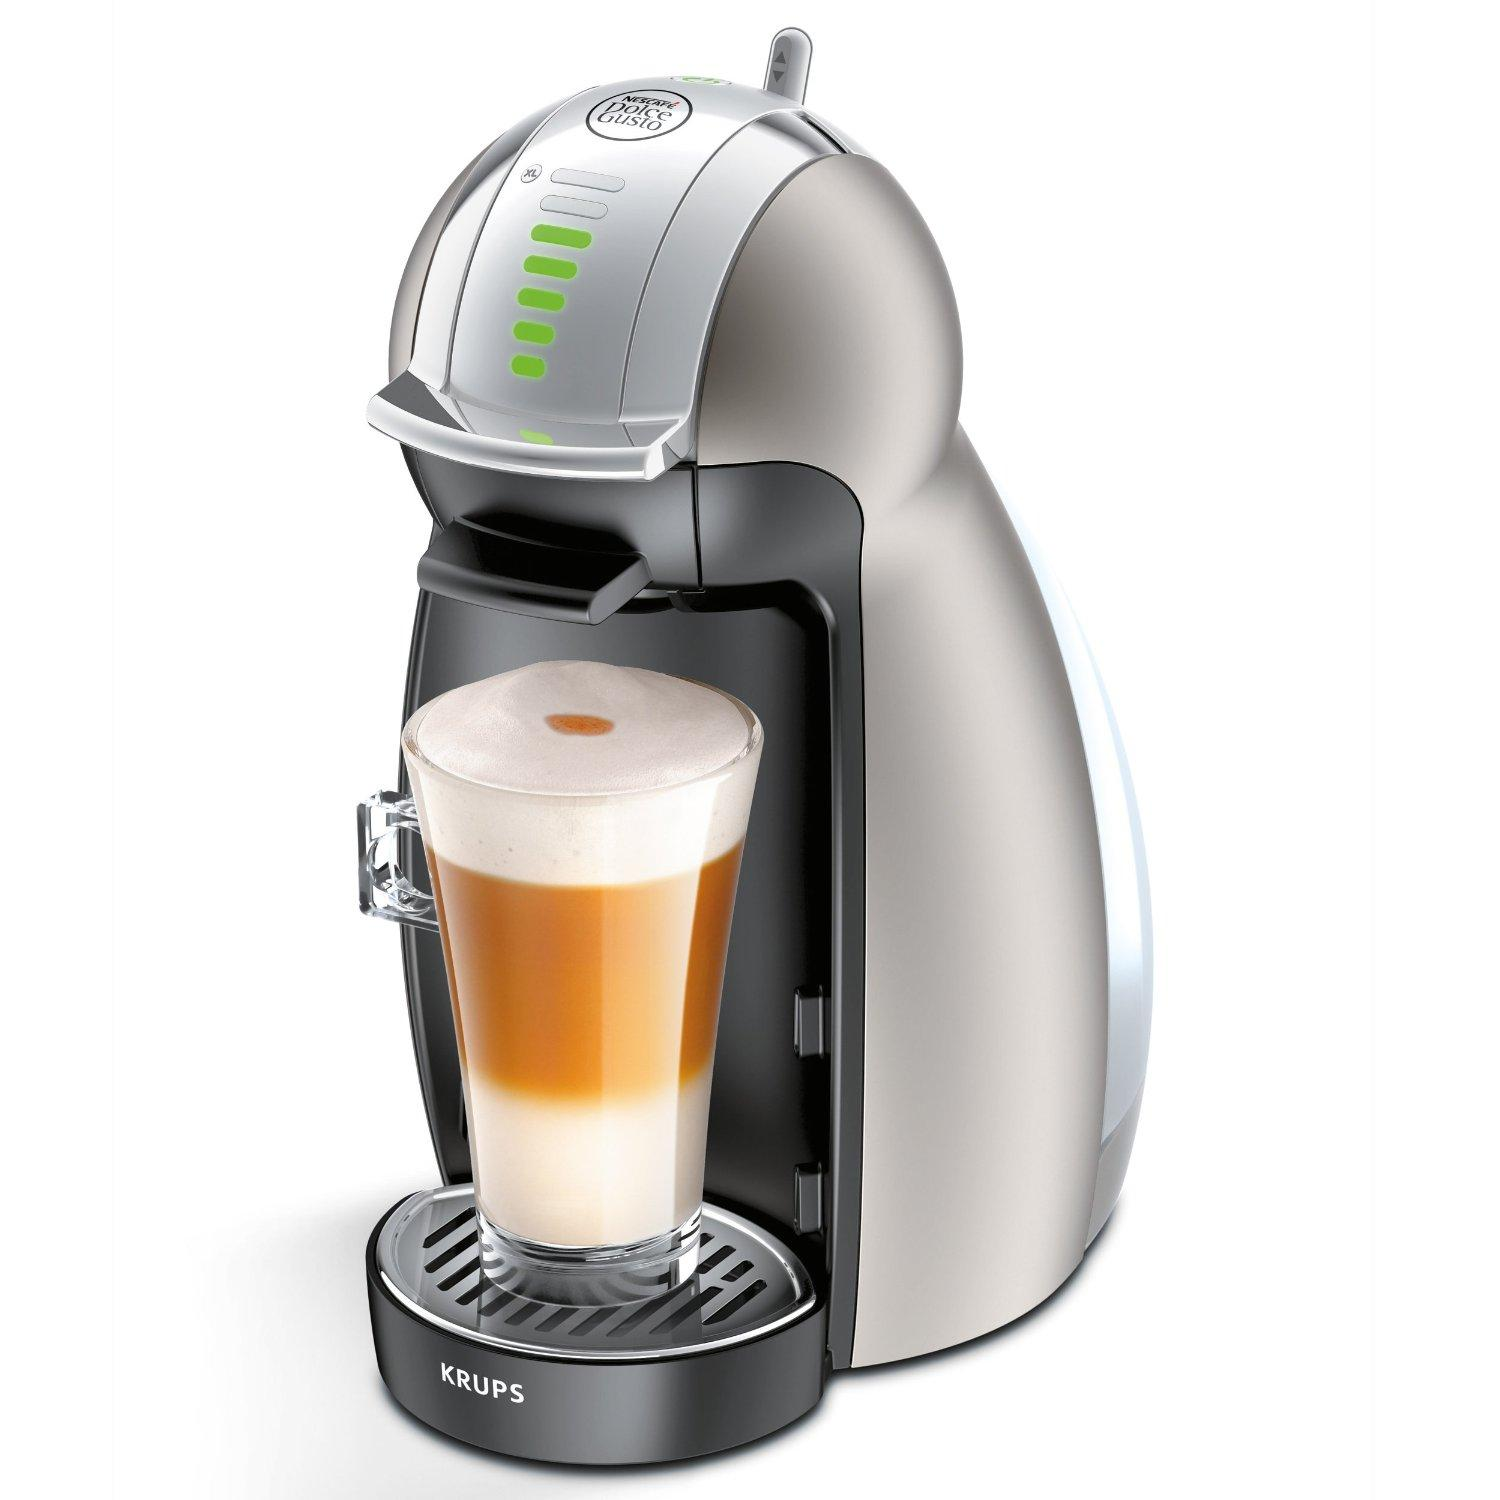 Krups - KP160T - Dolce gusto Genio 2